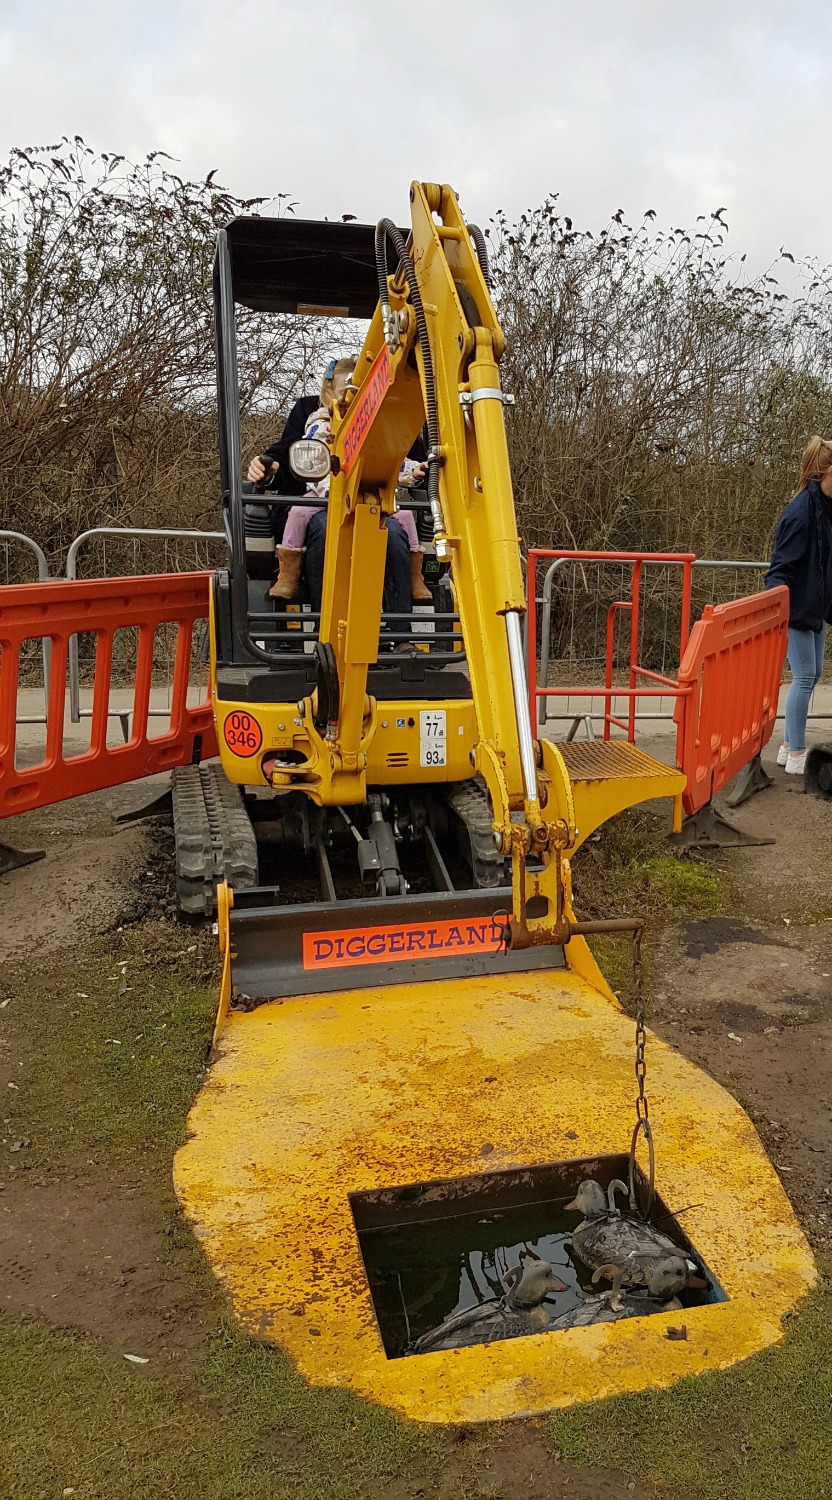 Trying to hook a duck at Diggerland Kent - one of the attractions on this family day out